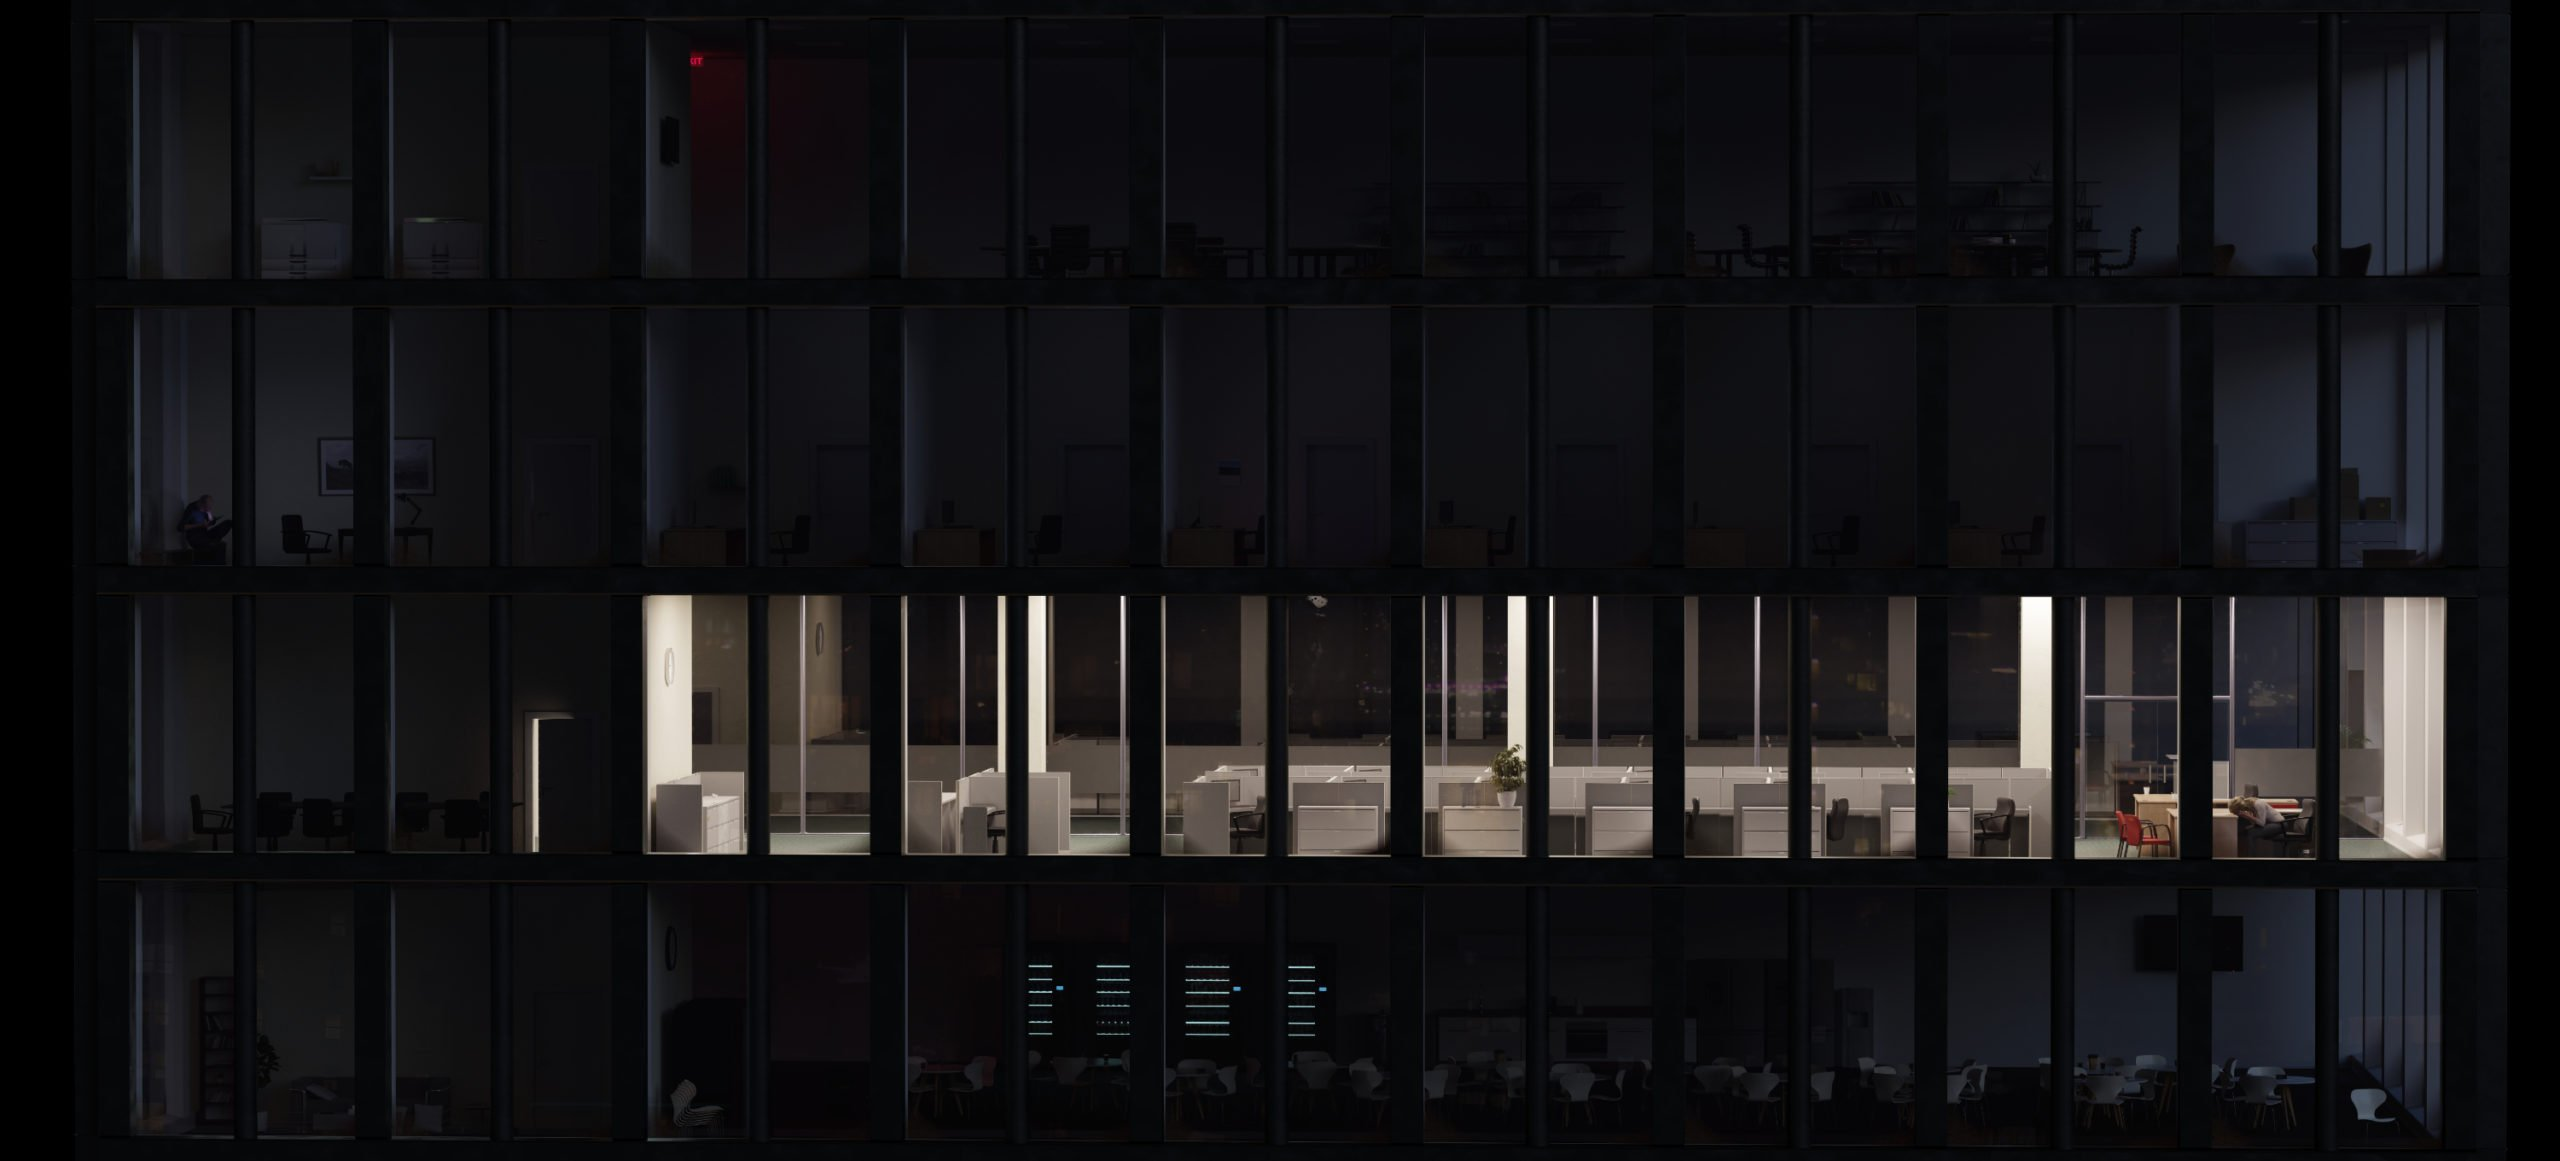 The_Office_Night_Small-scaled.jpg